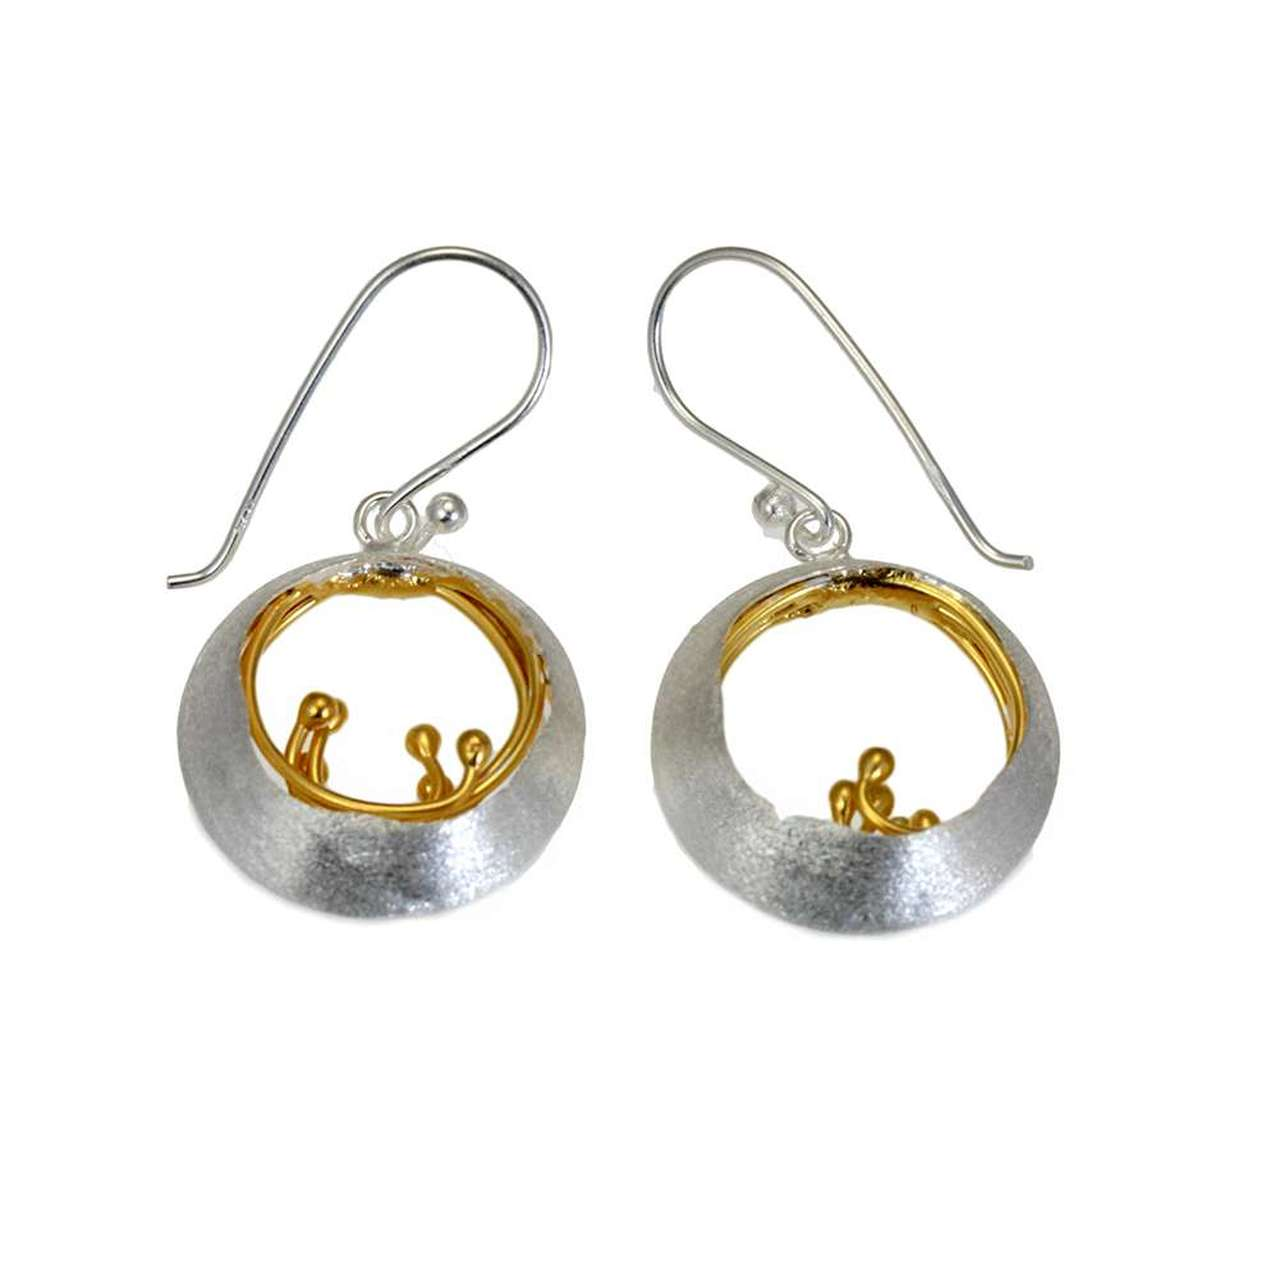 Little Water Feature Silver & Gold Plated Earrings by Christin Ranger